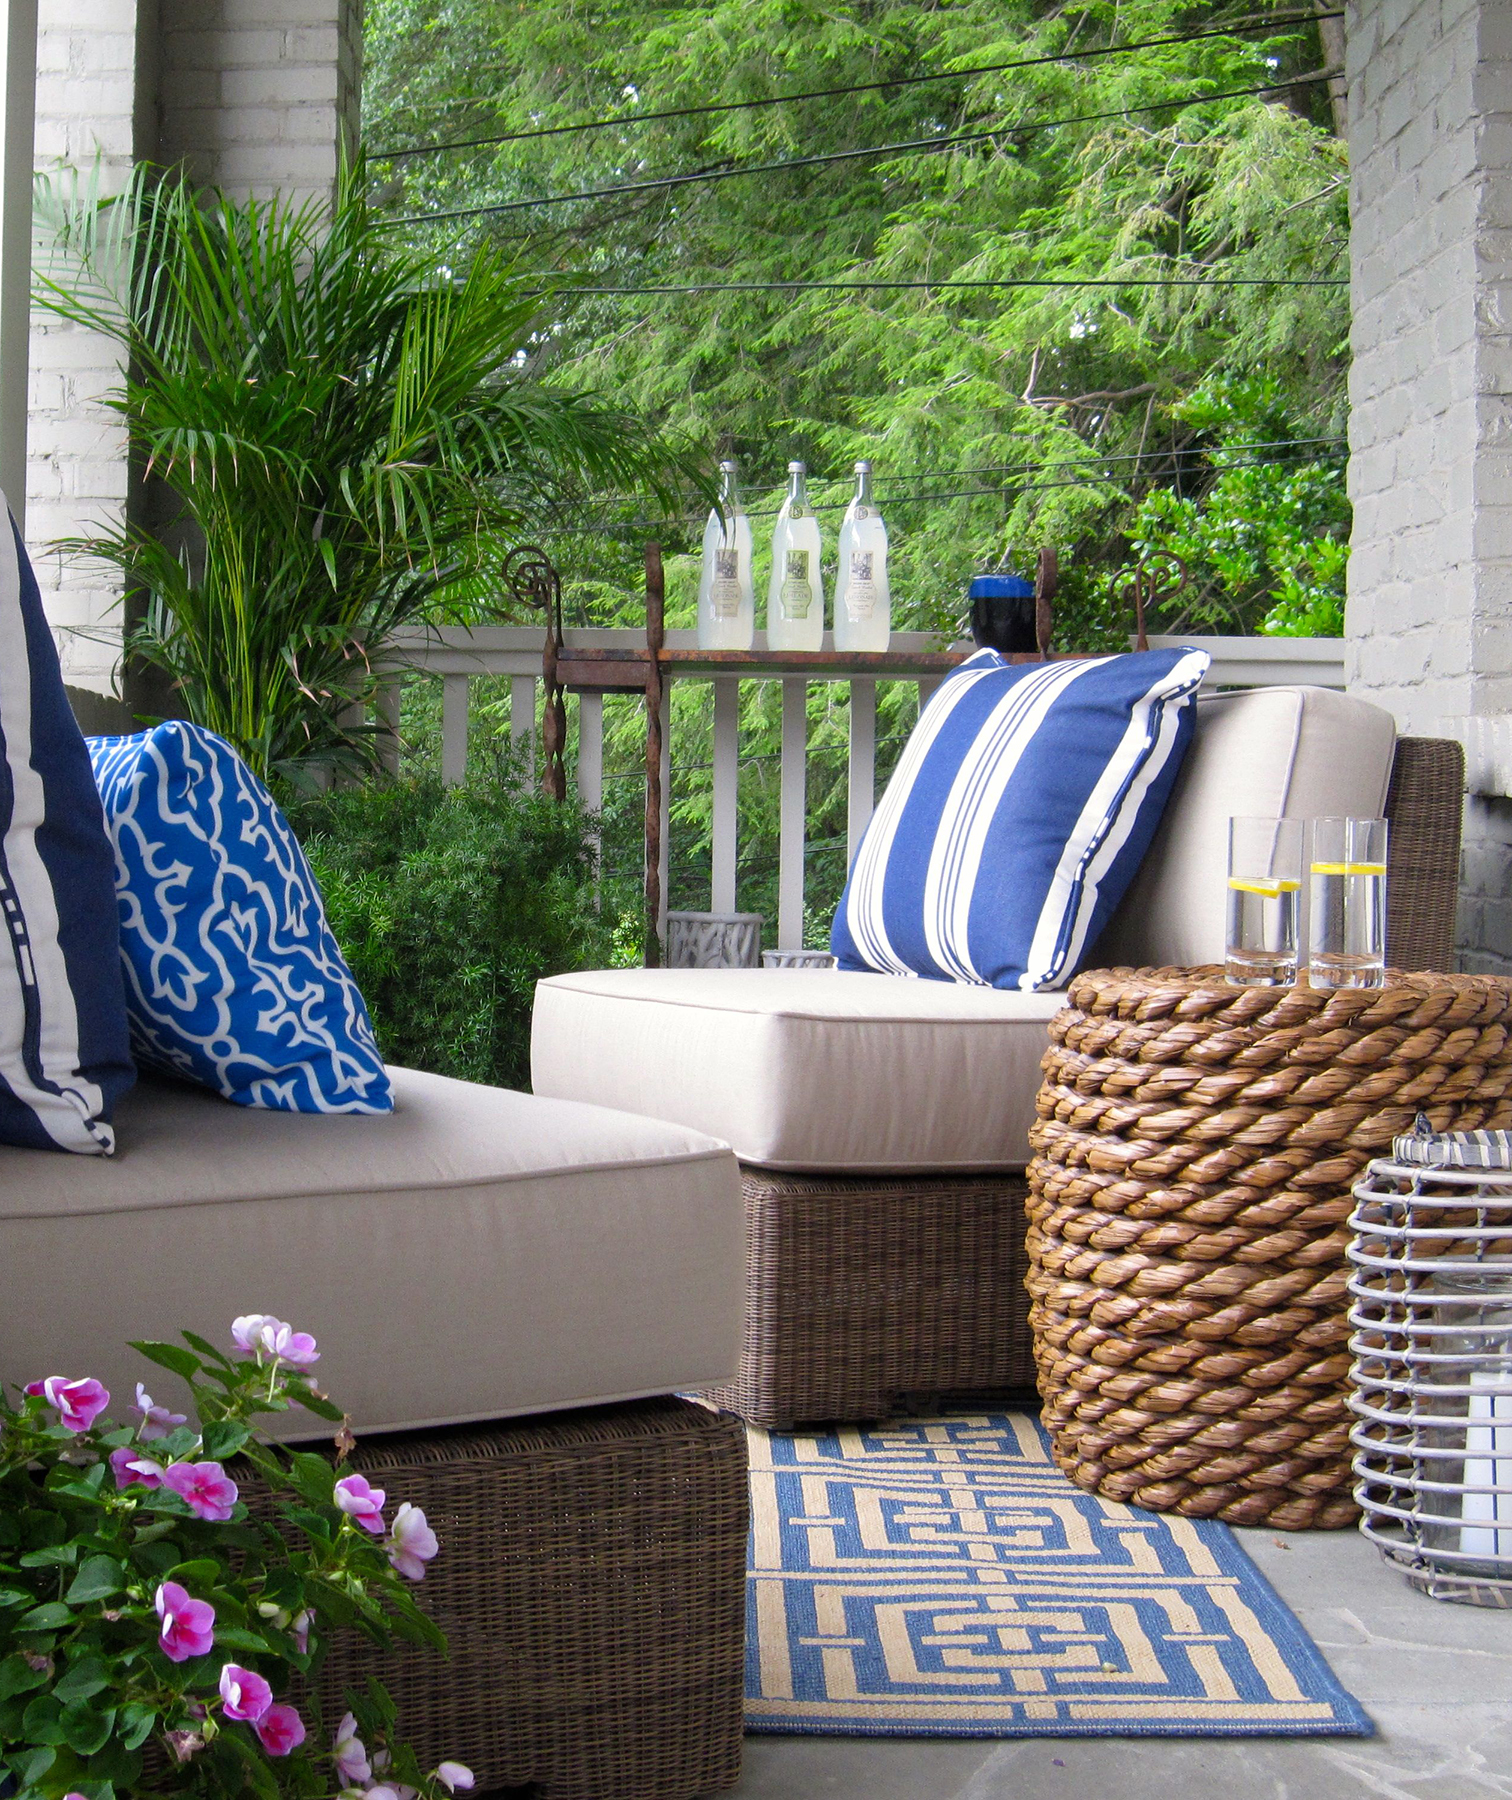 Patio with furniture and decorative pillows